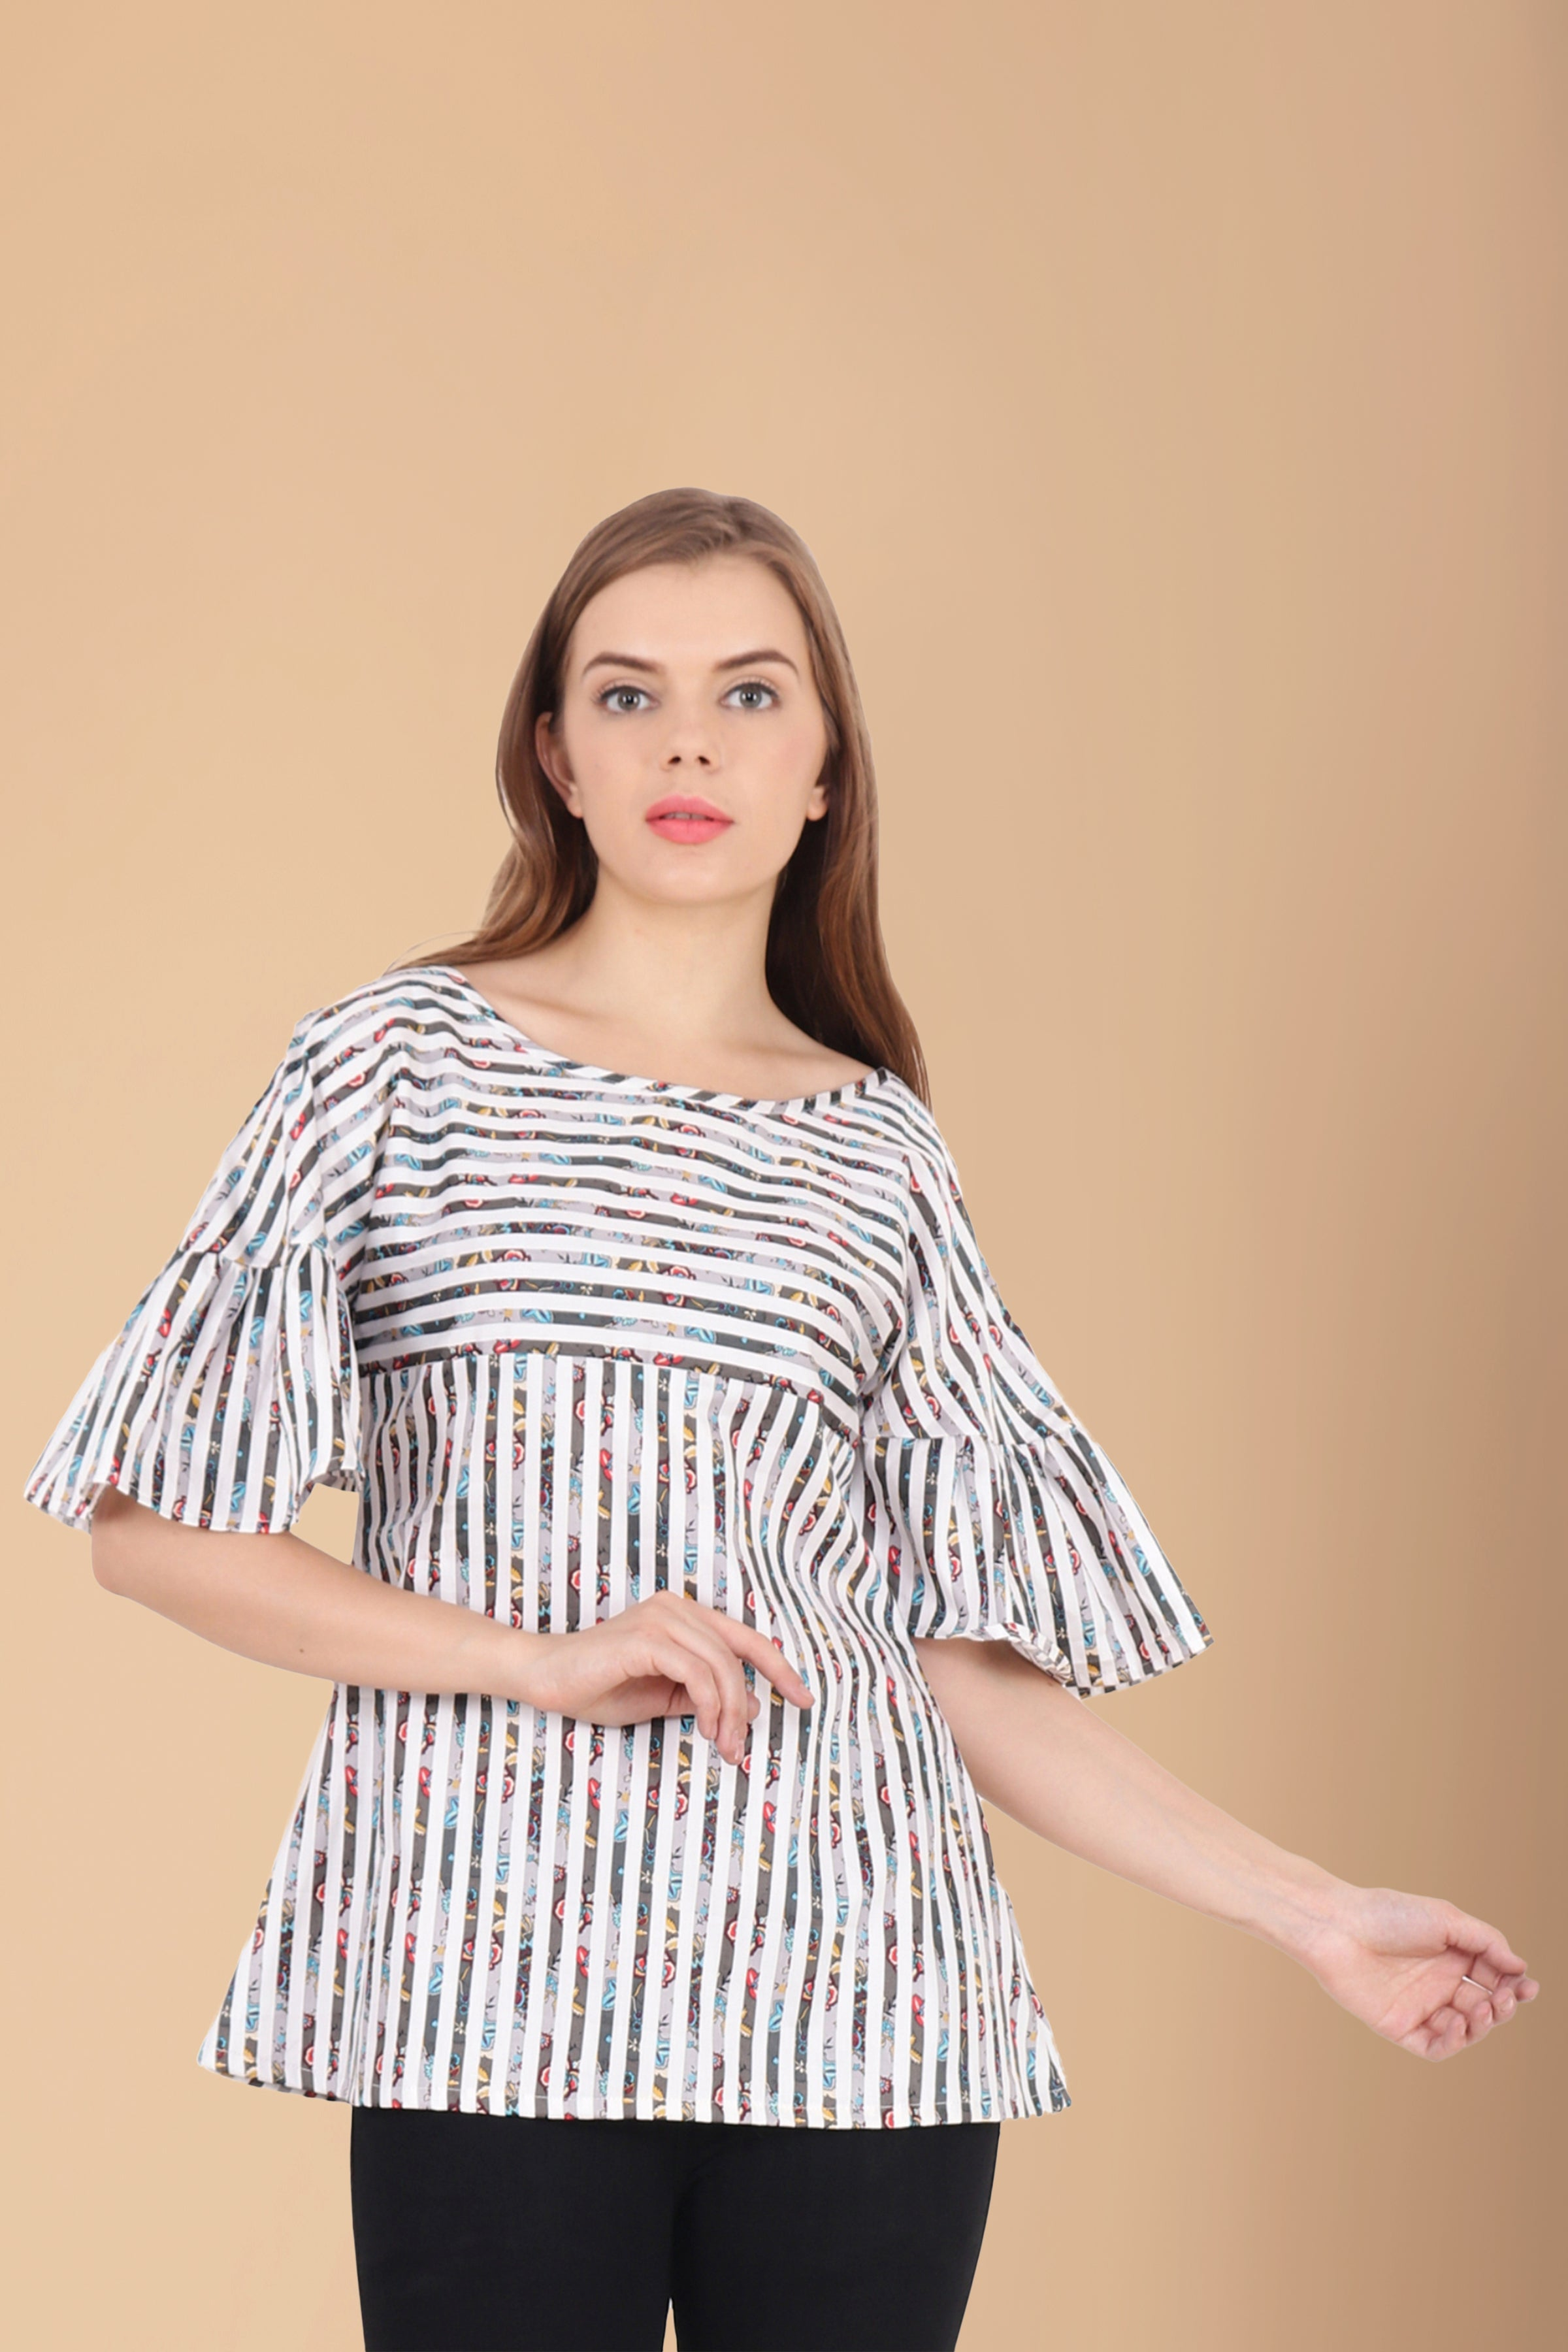 10XL, 2XL, 3XL, 4XL, 5XL, 6XL, 7XL, 8XL, 9XL, Black & White, Boat, Frilled, Glaced Cotton, PLUS SIZE TOP, PRINT, Stripes, TOP